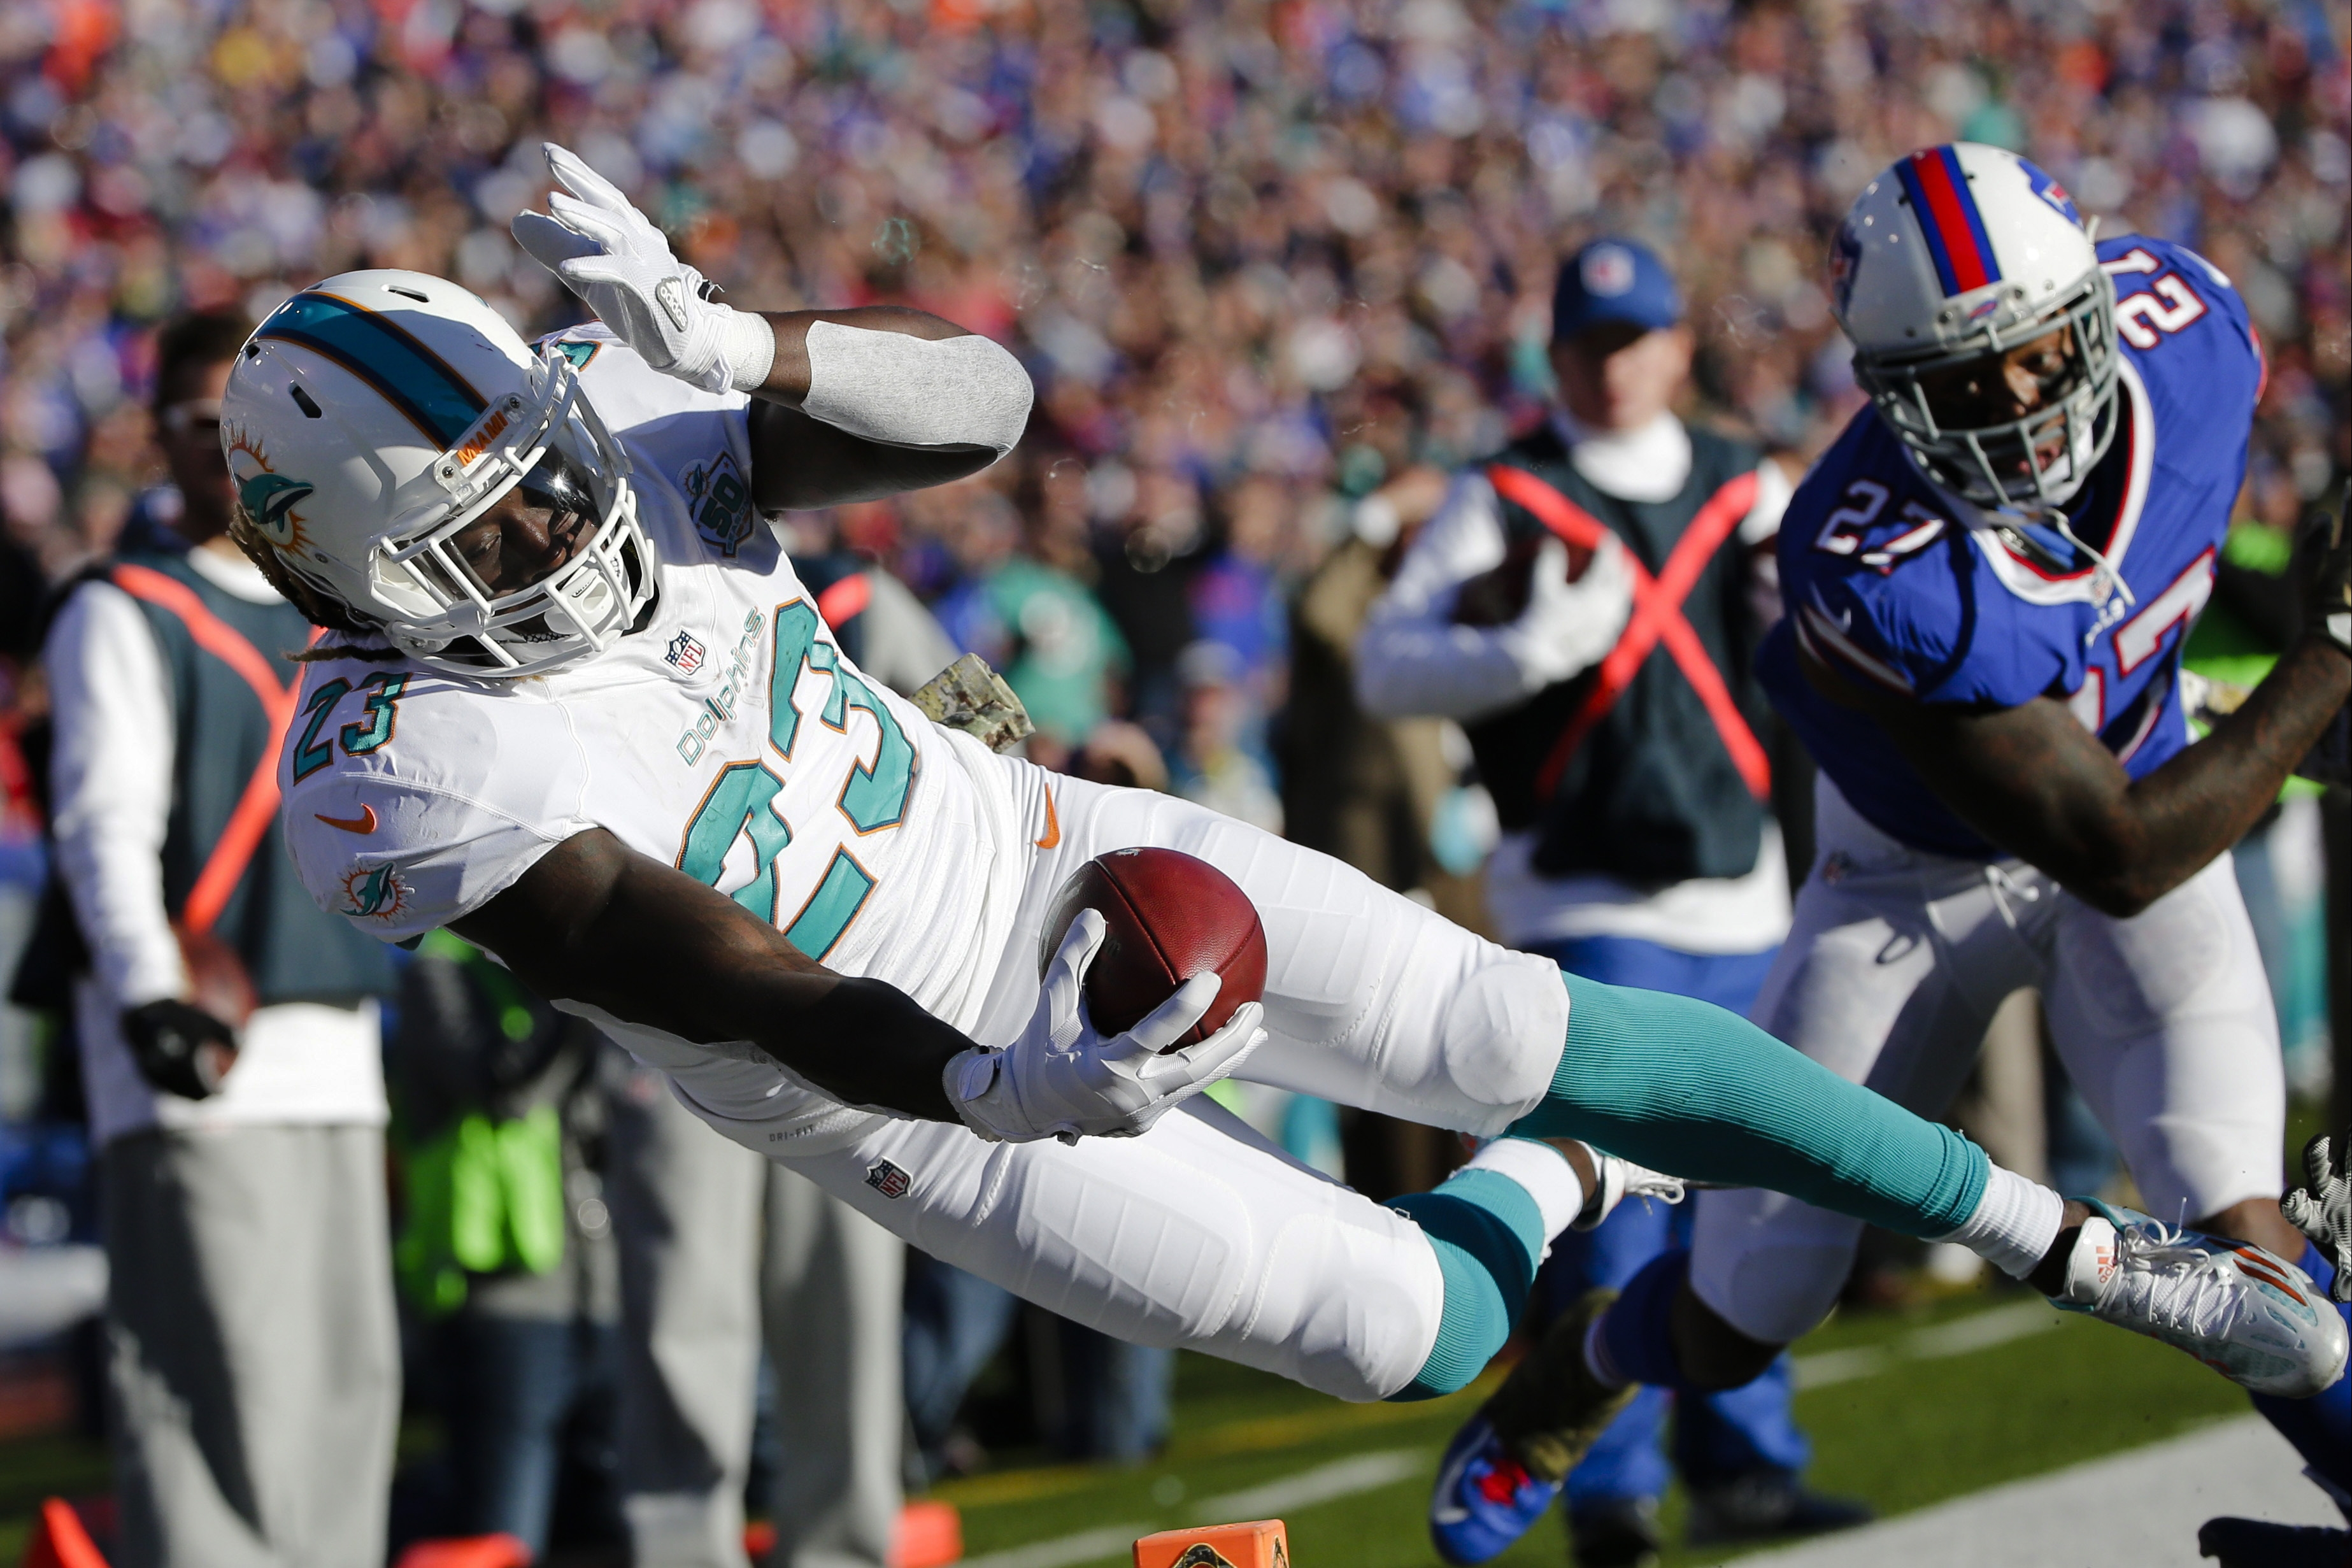 Miami Dolphins running back Jay Ajayi (23) dives past Buffalo Bills' Duke Williams (27) during the second half of an NFL football game Sunday, Nov. 8, 2015, in Orchard Park, N.Y. (AP Photo/Bill Wippert)